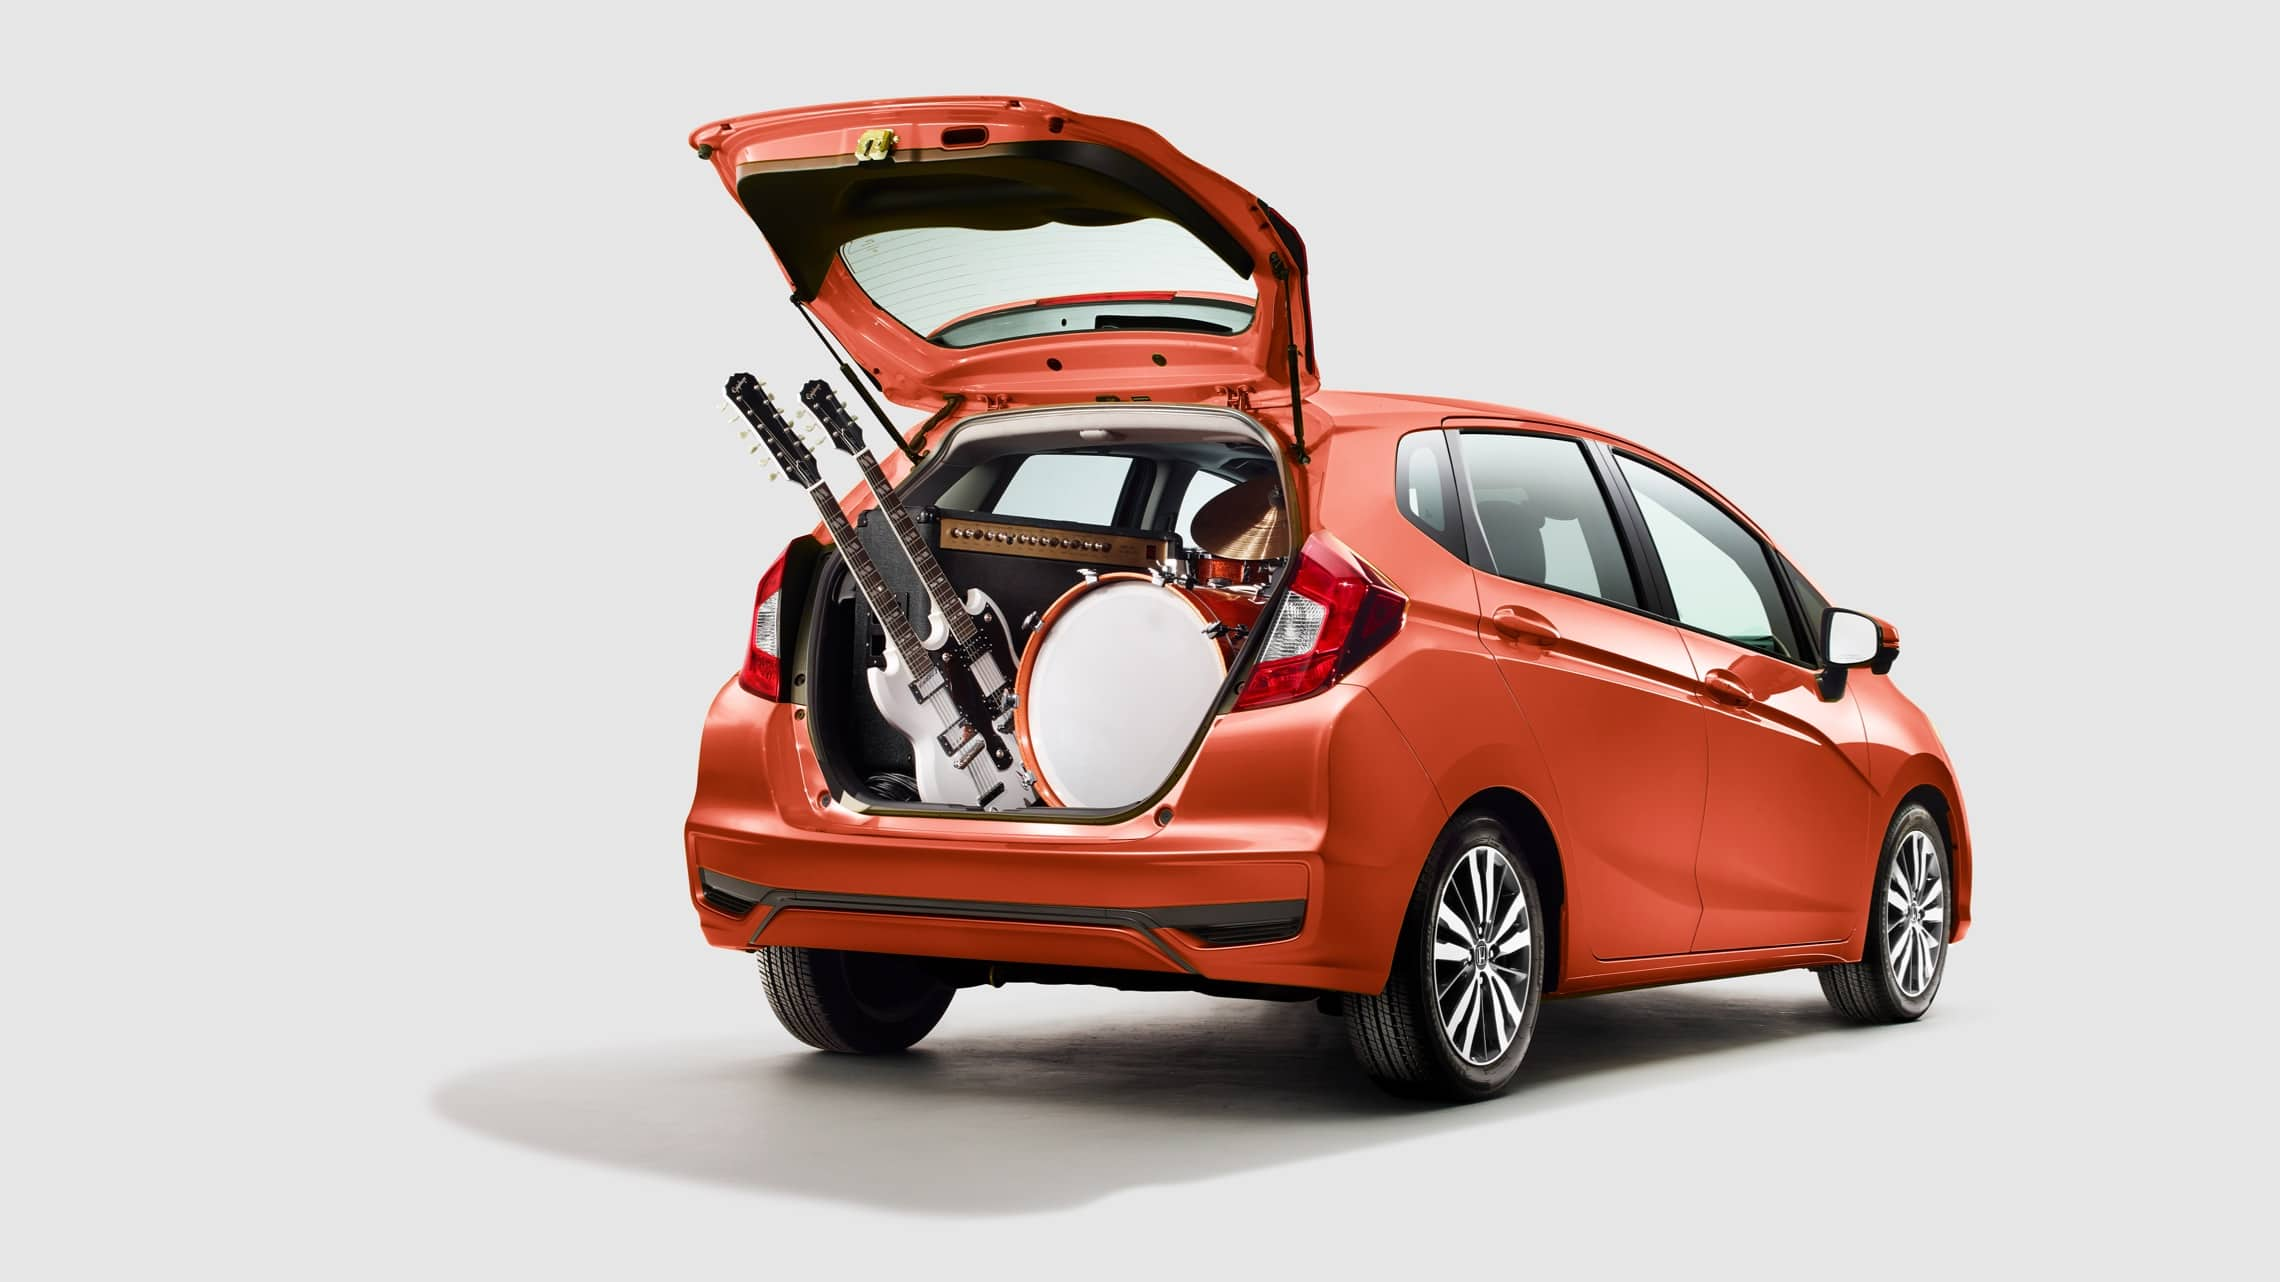 Rear passenger-side view of the 2020 Honda Fit EX-L in Orange Fury with liftgate open and musical instruments in cargo area.